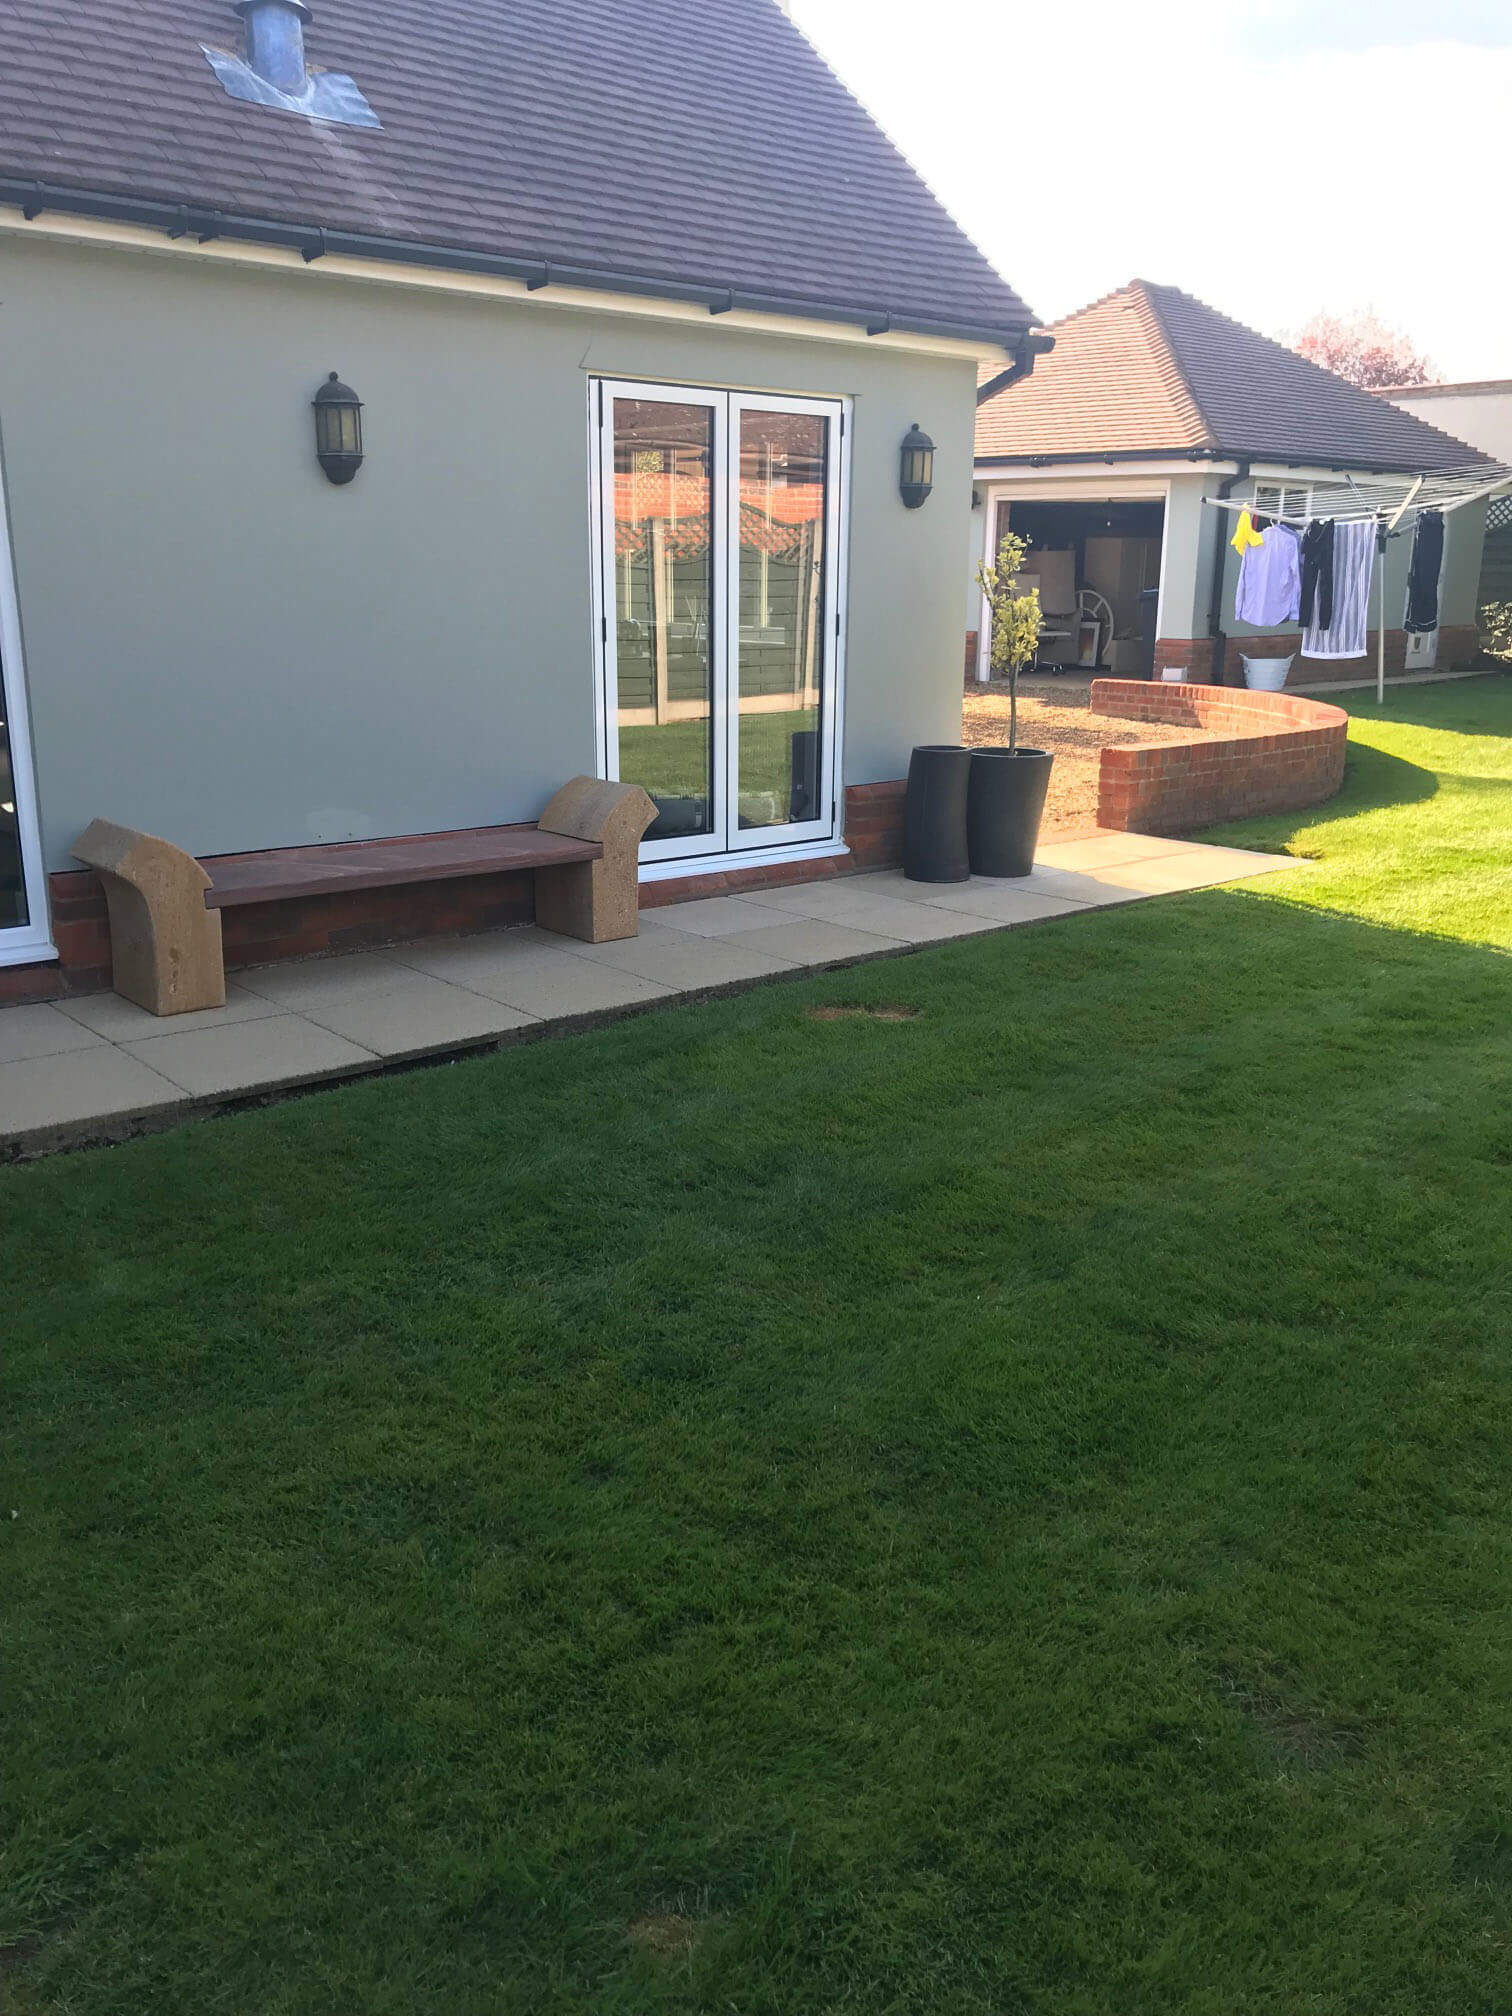 Datchworth Patio before 2 - Hertfordshire Driveways